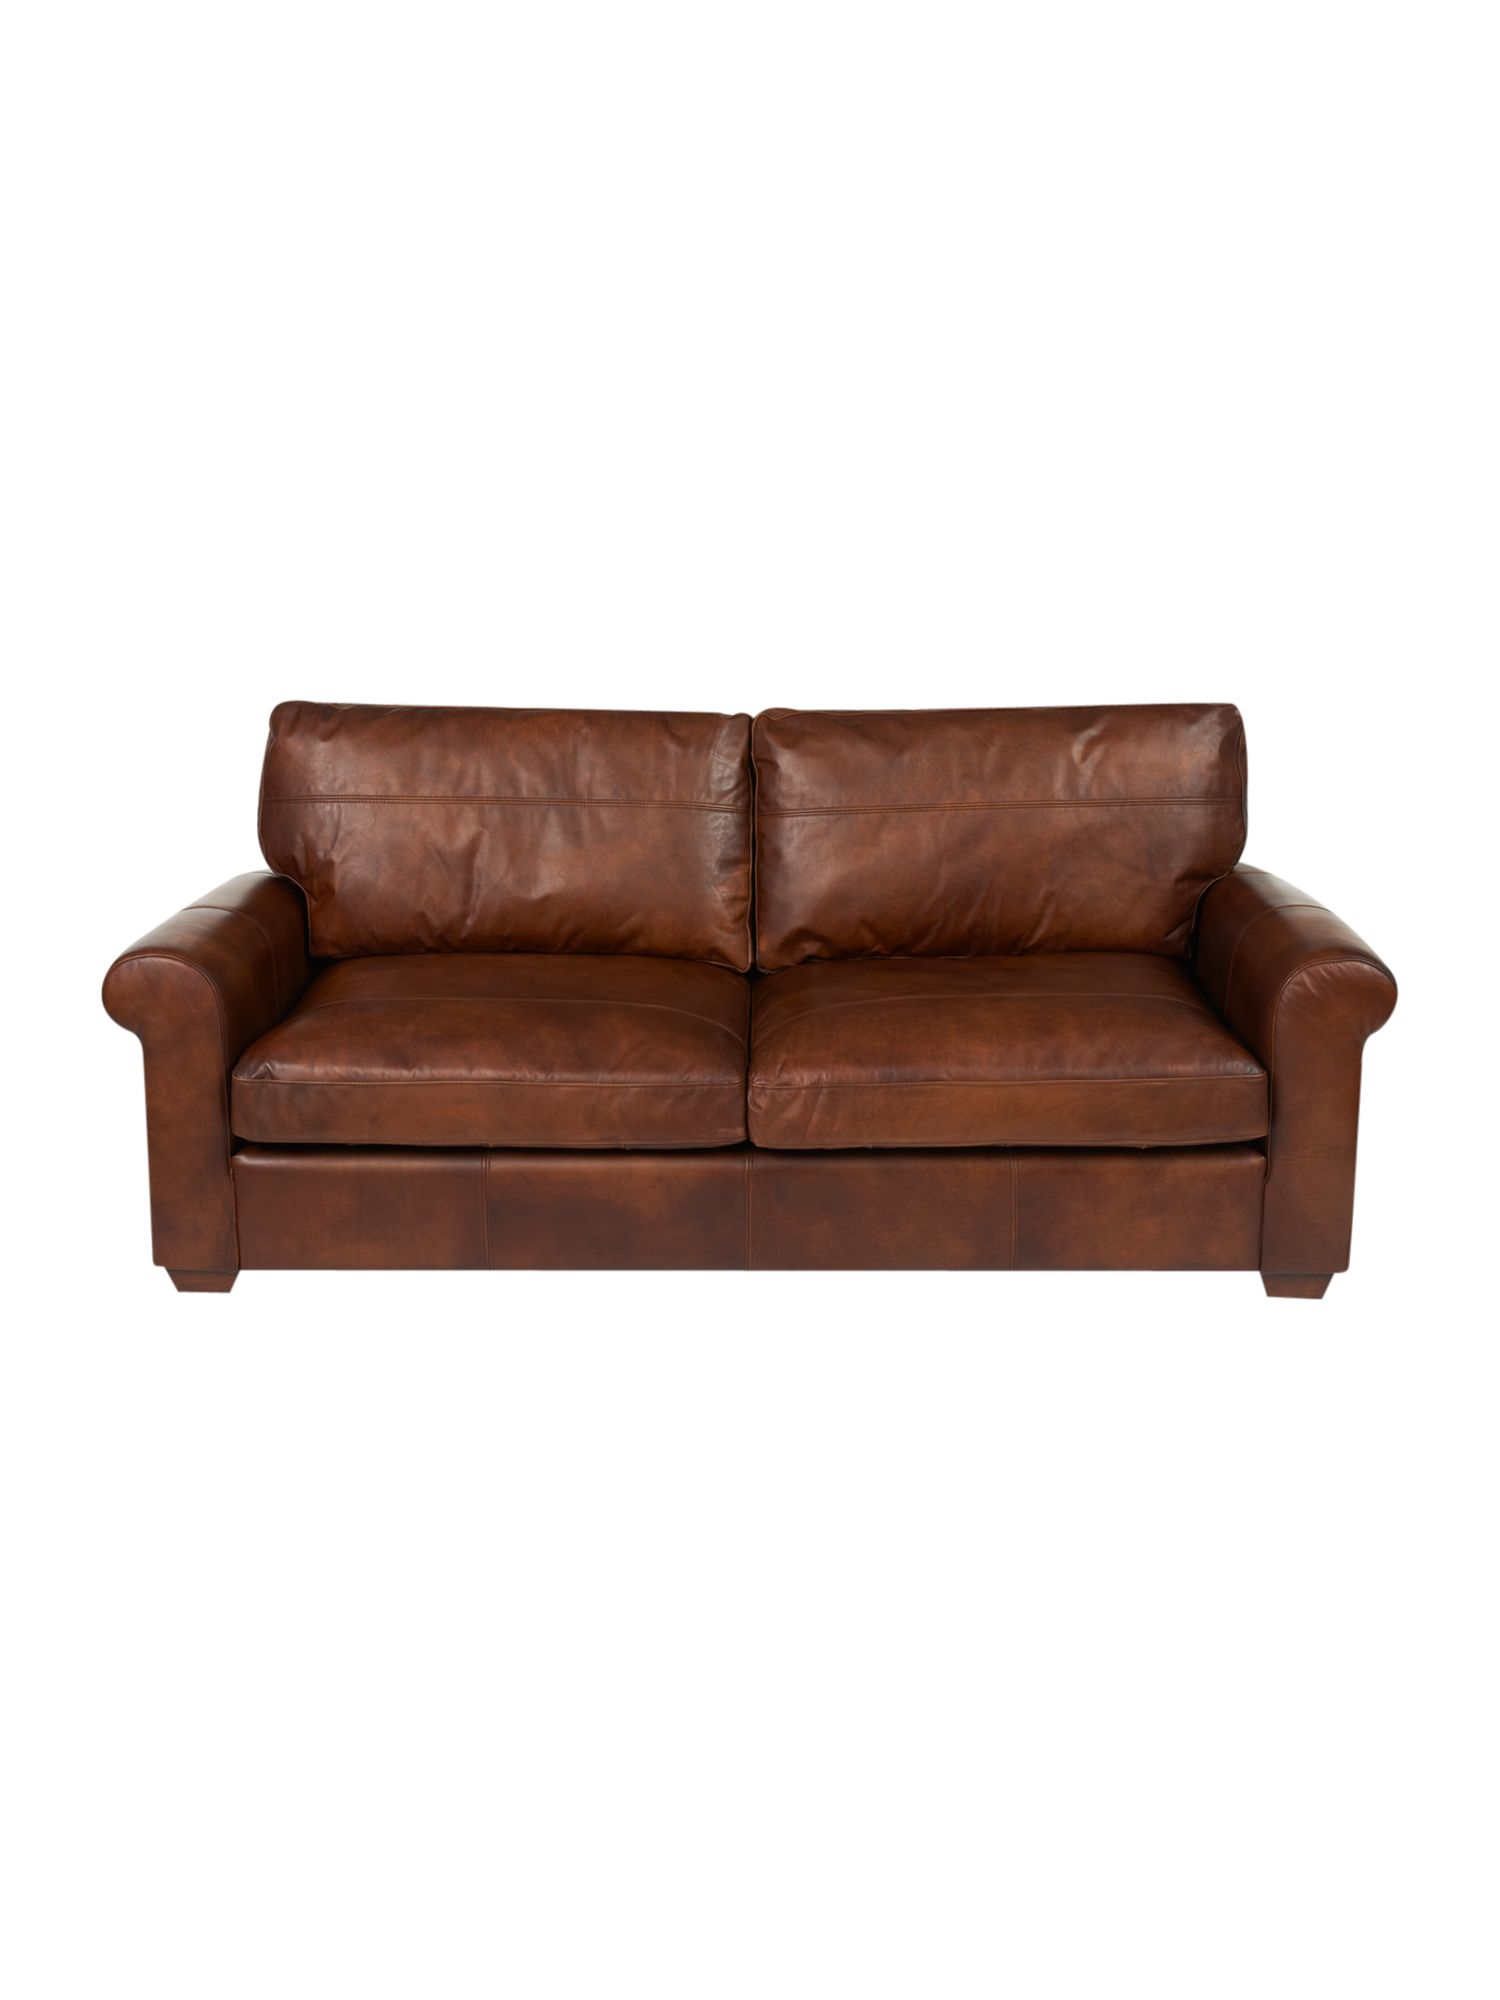 Westminter sofa range